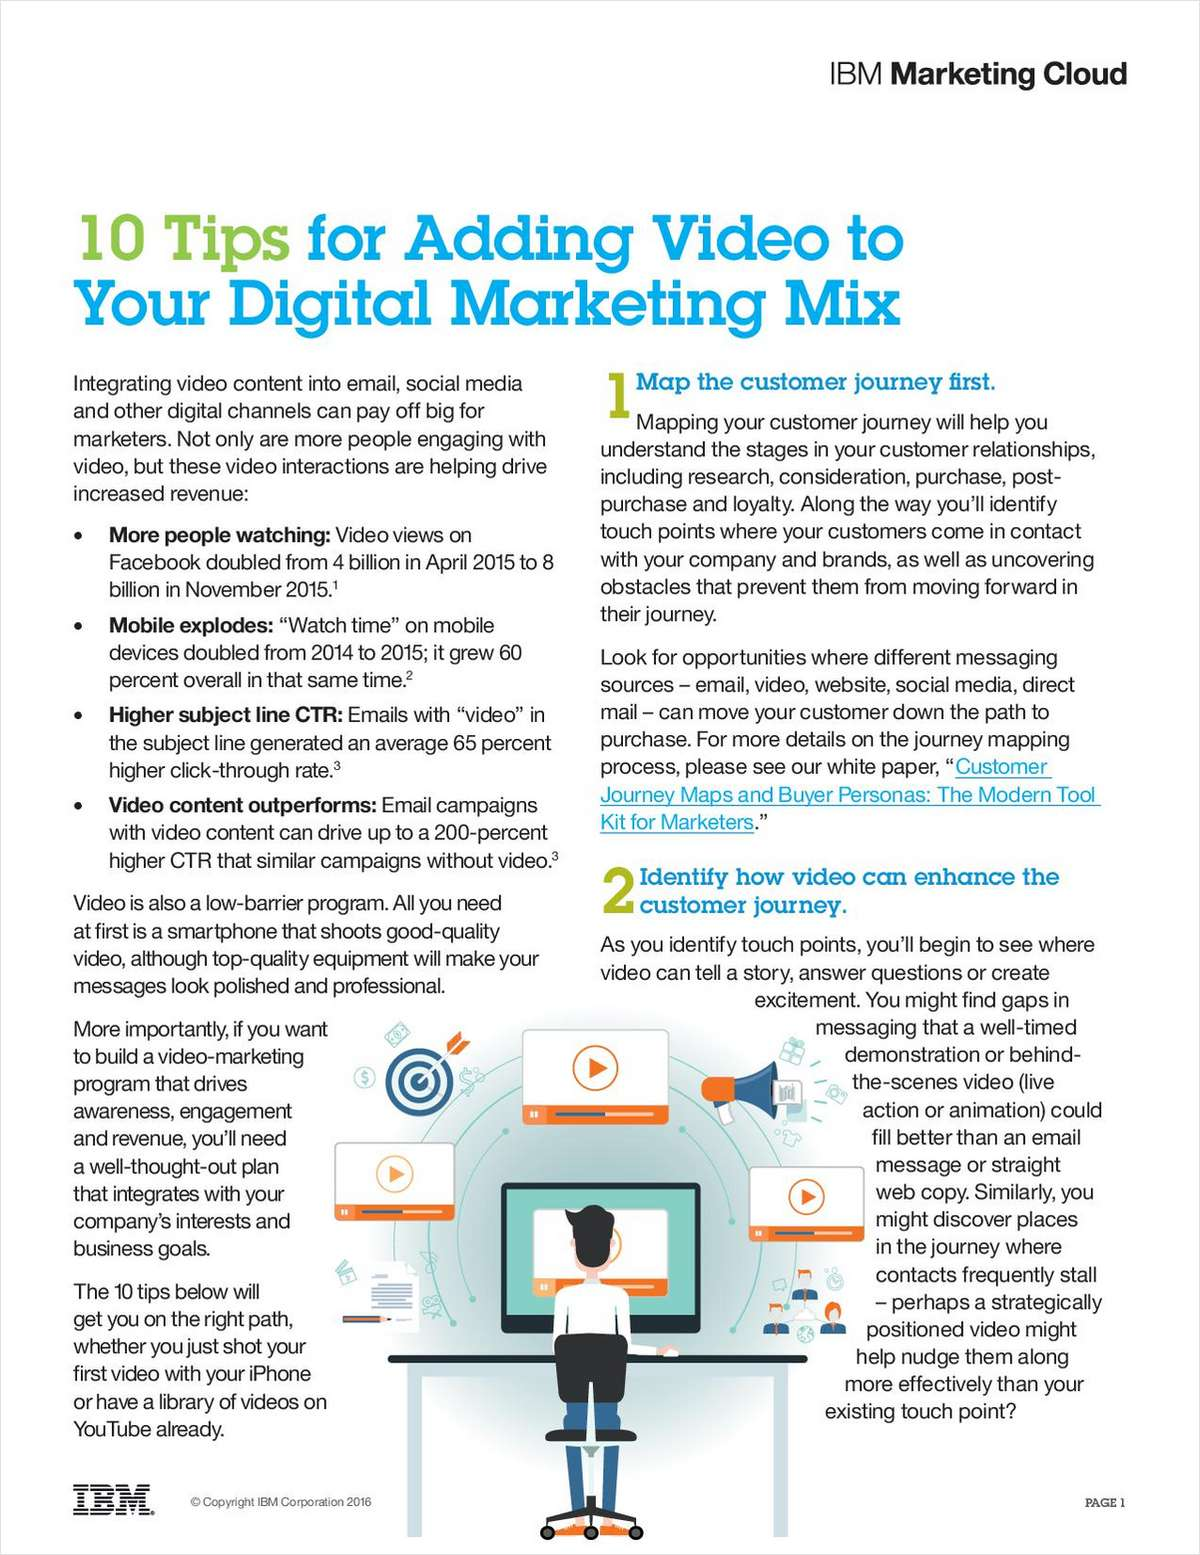 10 Tips for Adding Video to Your Digital Marketing Mix